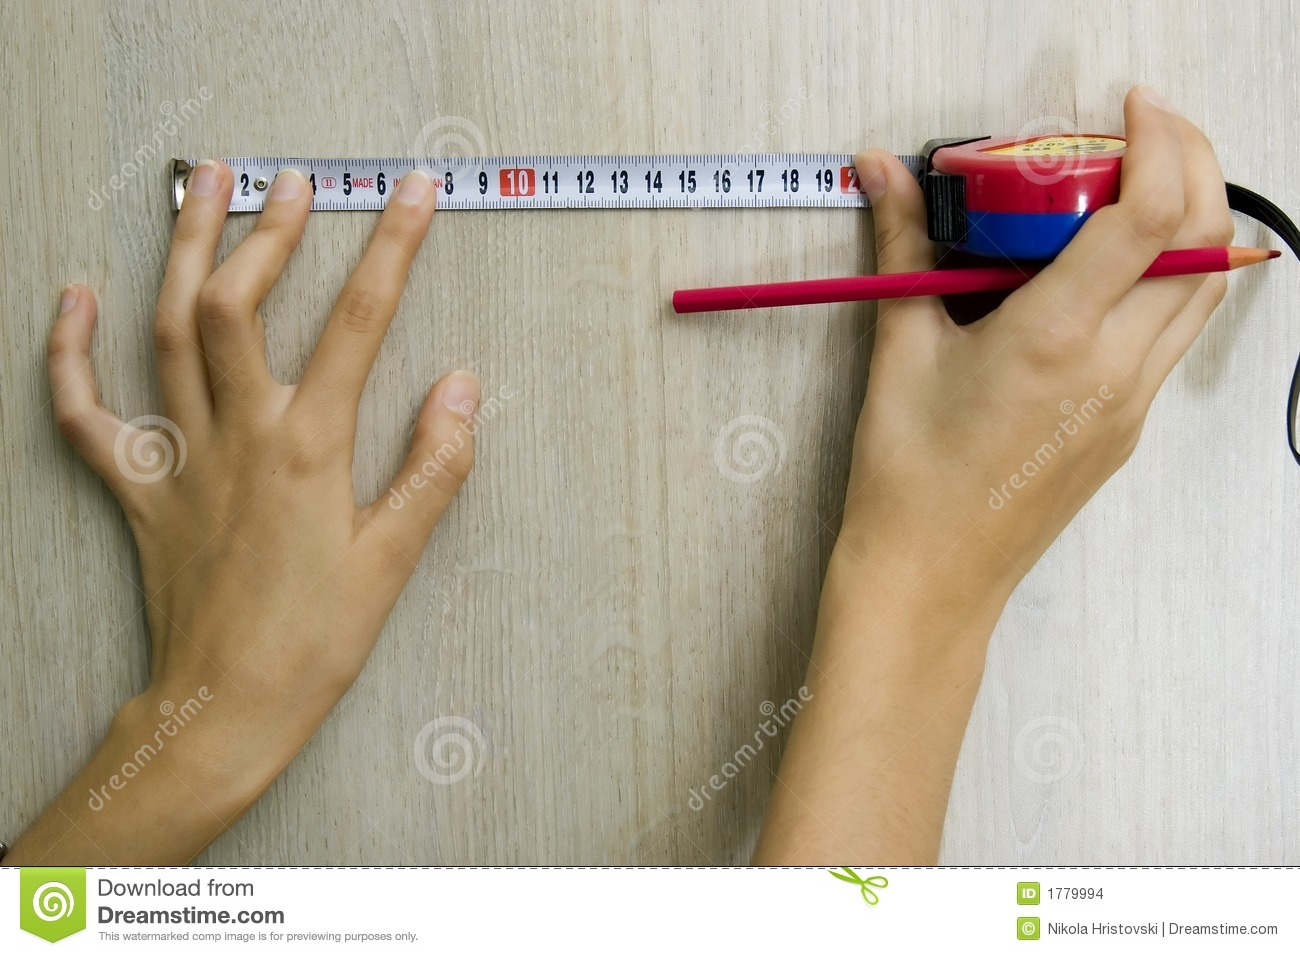 Hans with measuring tape